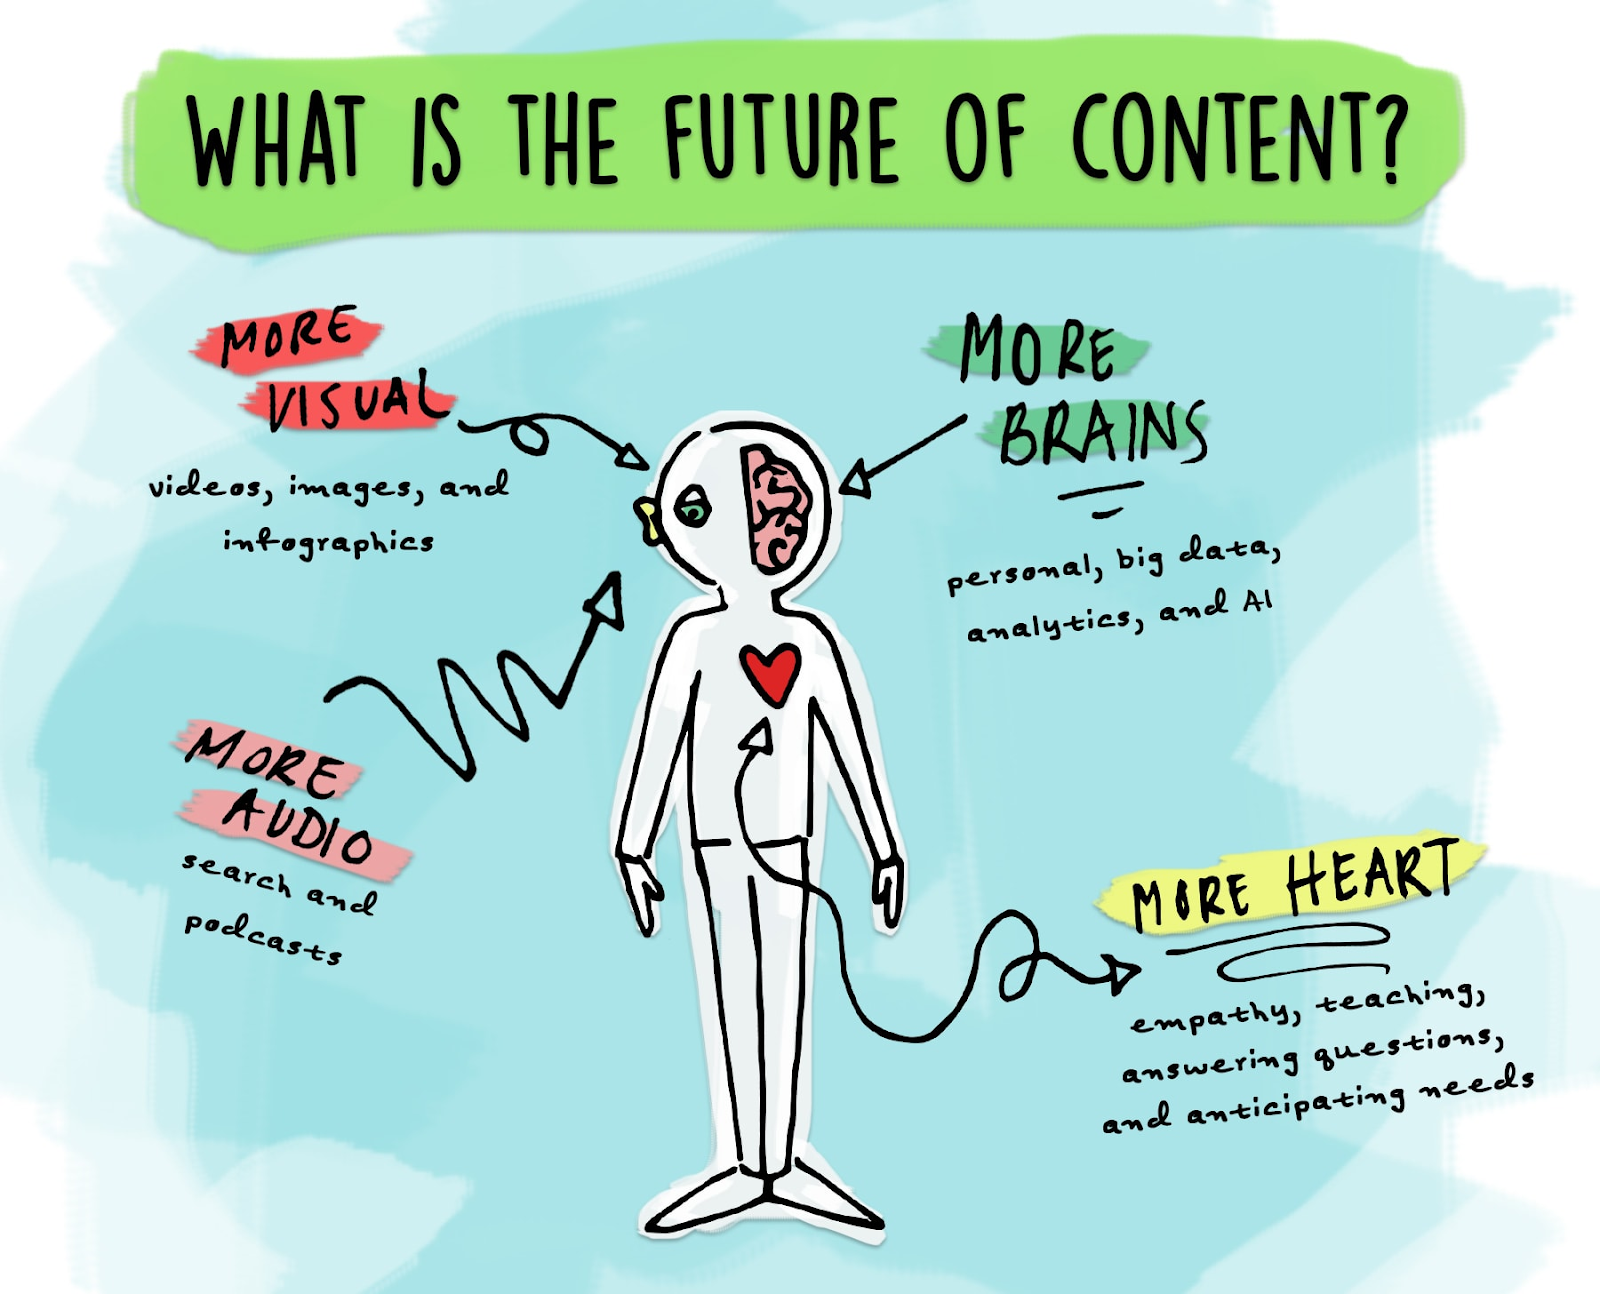 A drawing of a body highlighting the future of content: more visual, more brains, more audio, more heart.